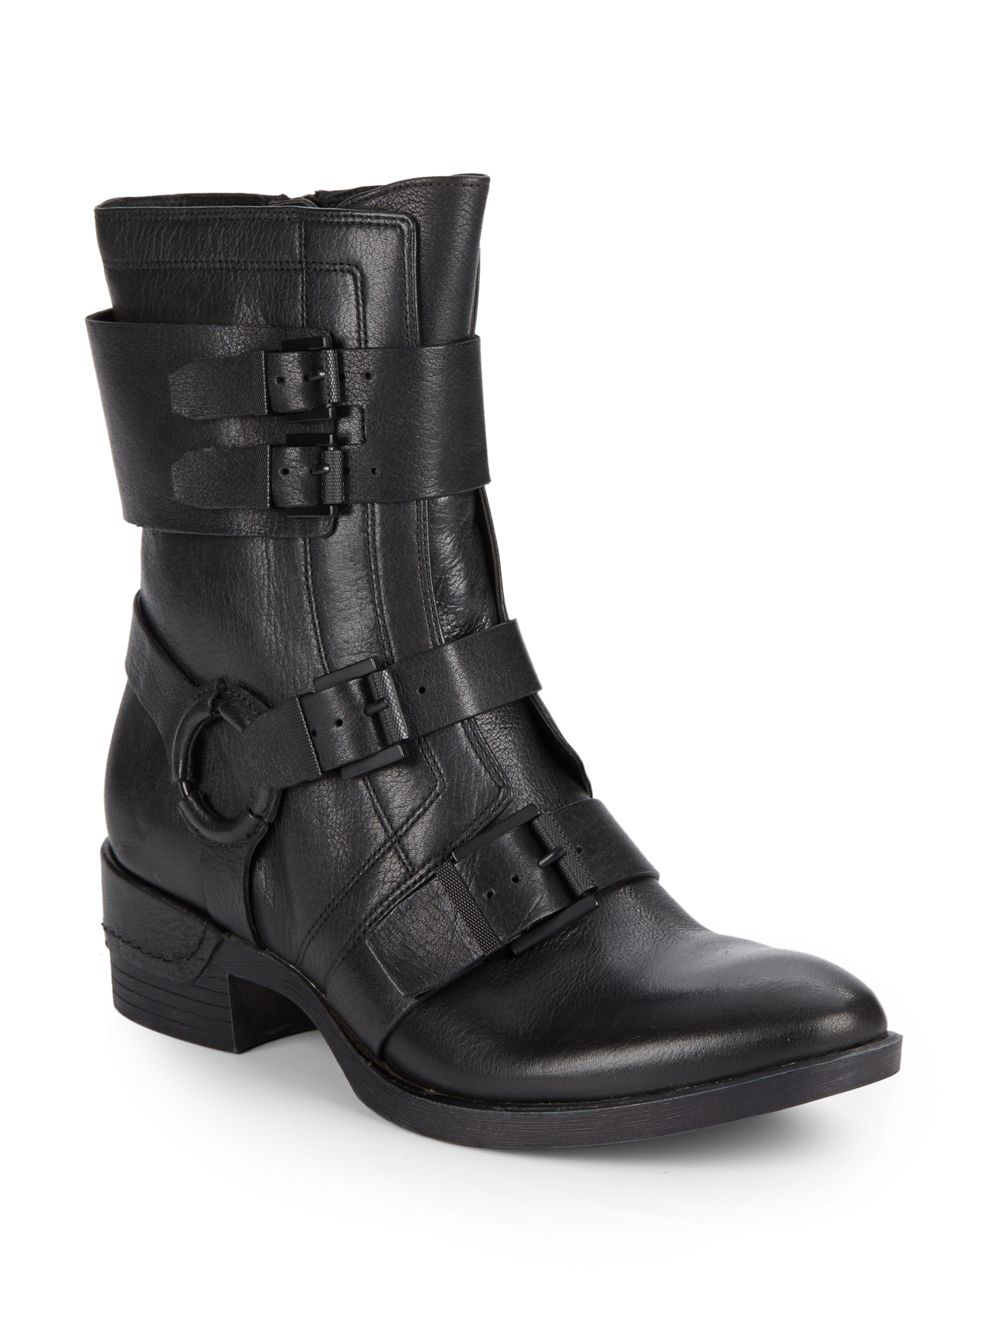 kenneth cole lawton buckle leather boots in black lyst